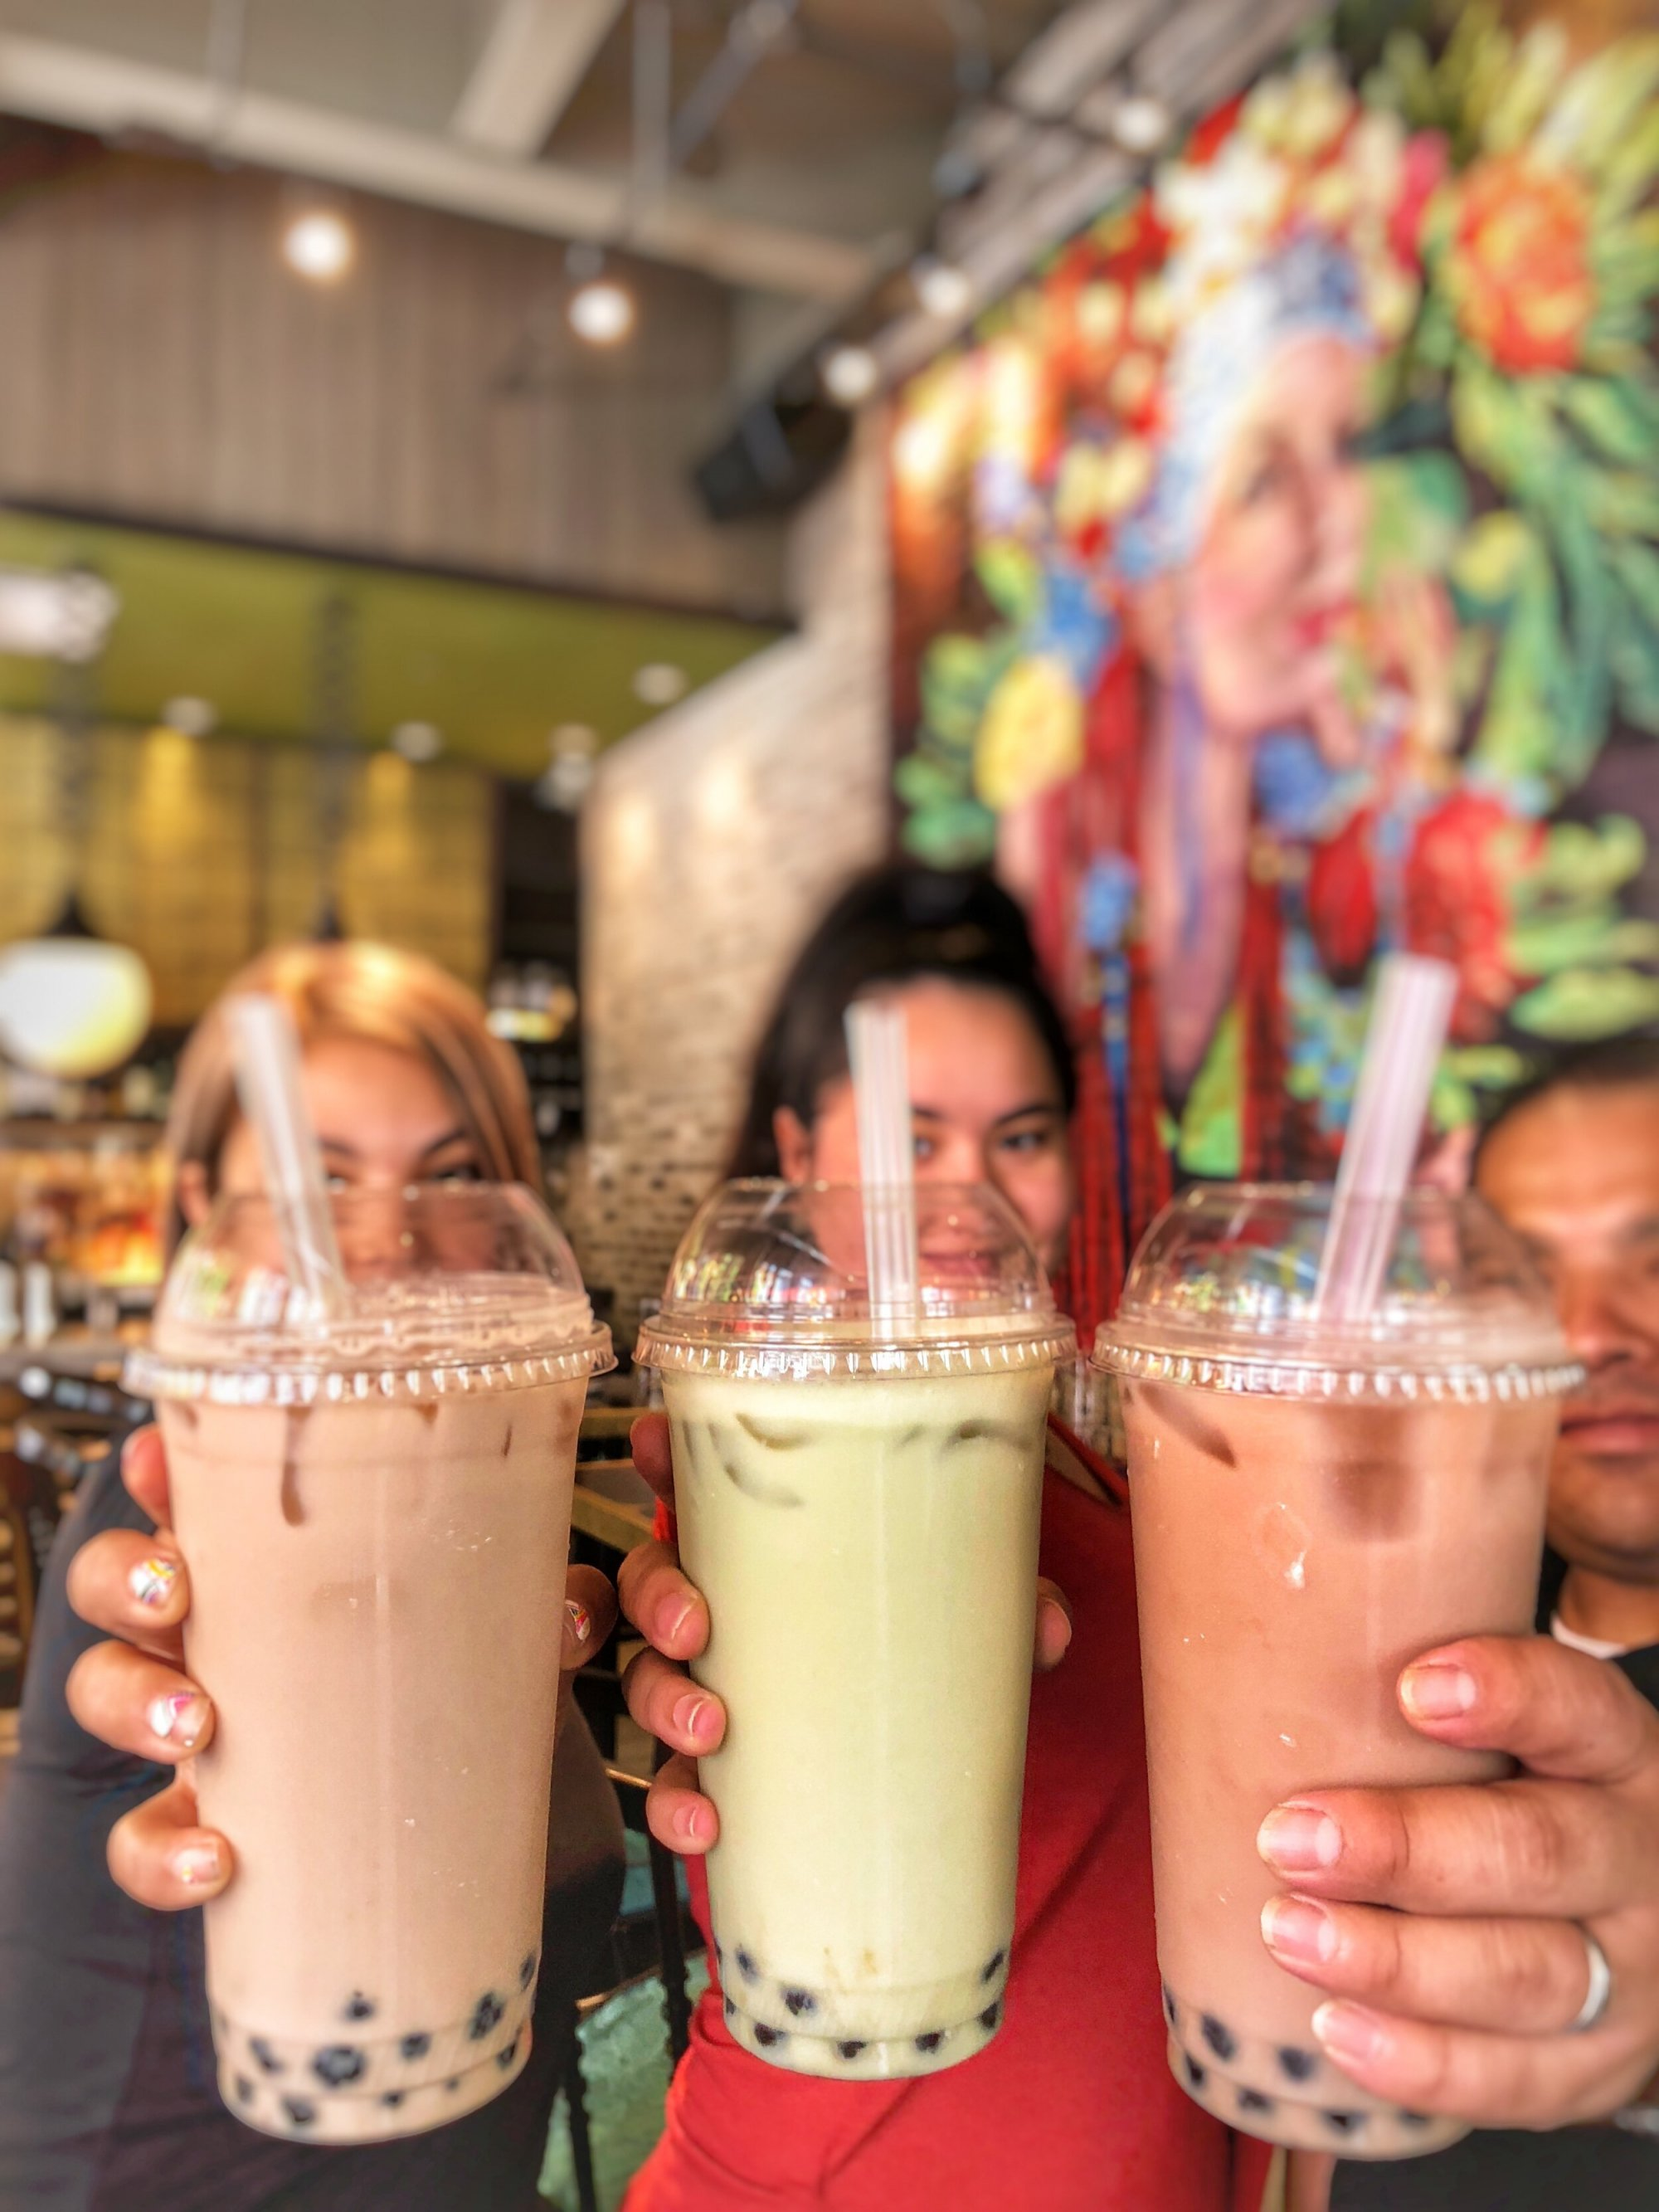 SIP ME BABY ONE MORE TIME - Our new bubble tea *flavors like Mango Matcha 🥭, Strawberry 🍓, Milk Tea 🥛🍵, Pineapple Melon 🍍🍈 , and Coconut Lychee 🥥 are guaranteed to make you feel all bubbly inside and leave you craving for more! Grab your